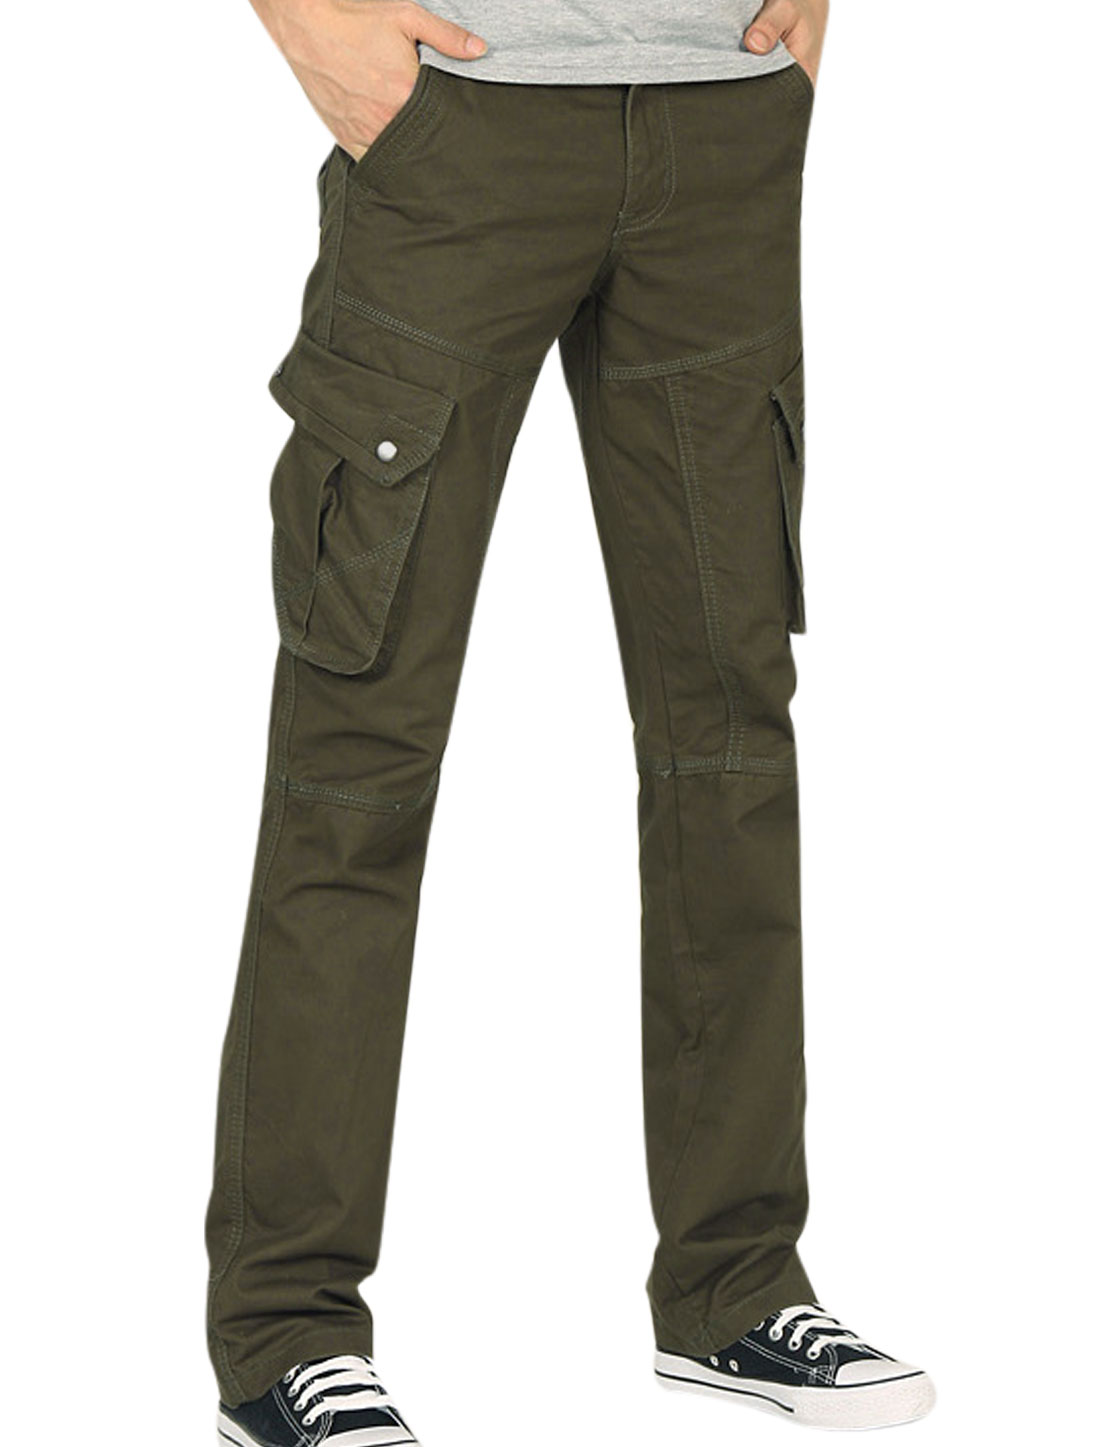 Straight Legs Design Zip Up Army Green Cargo Pants for Man W30